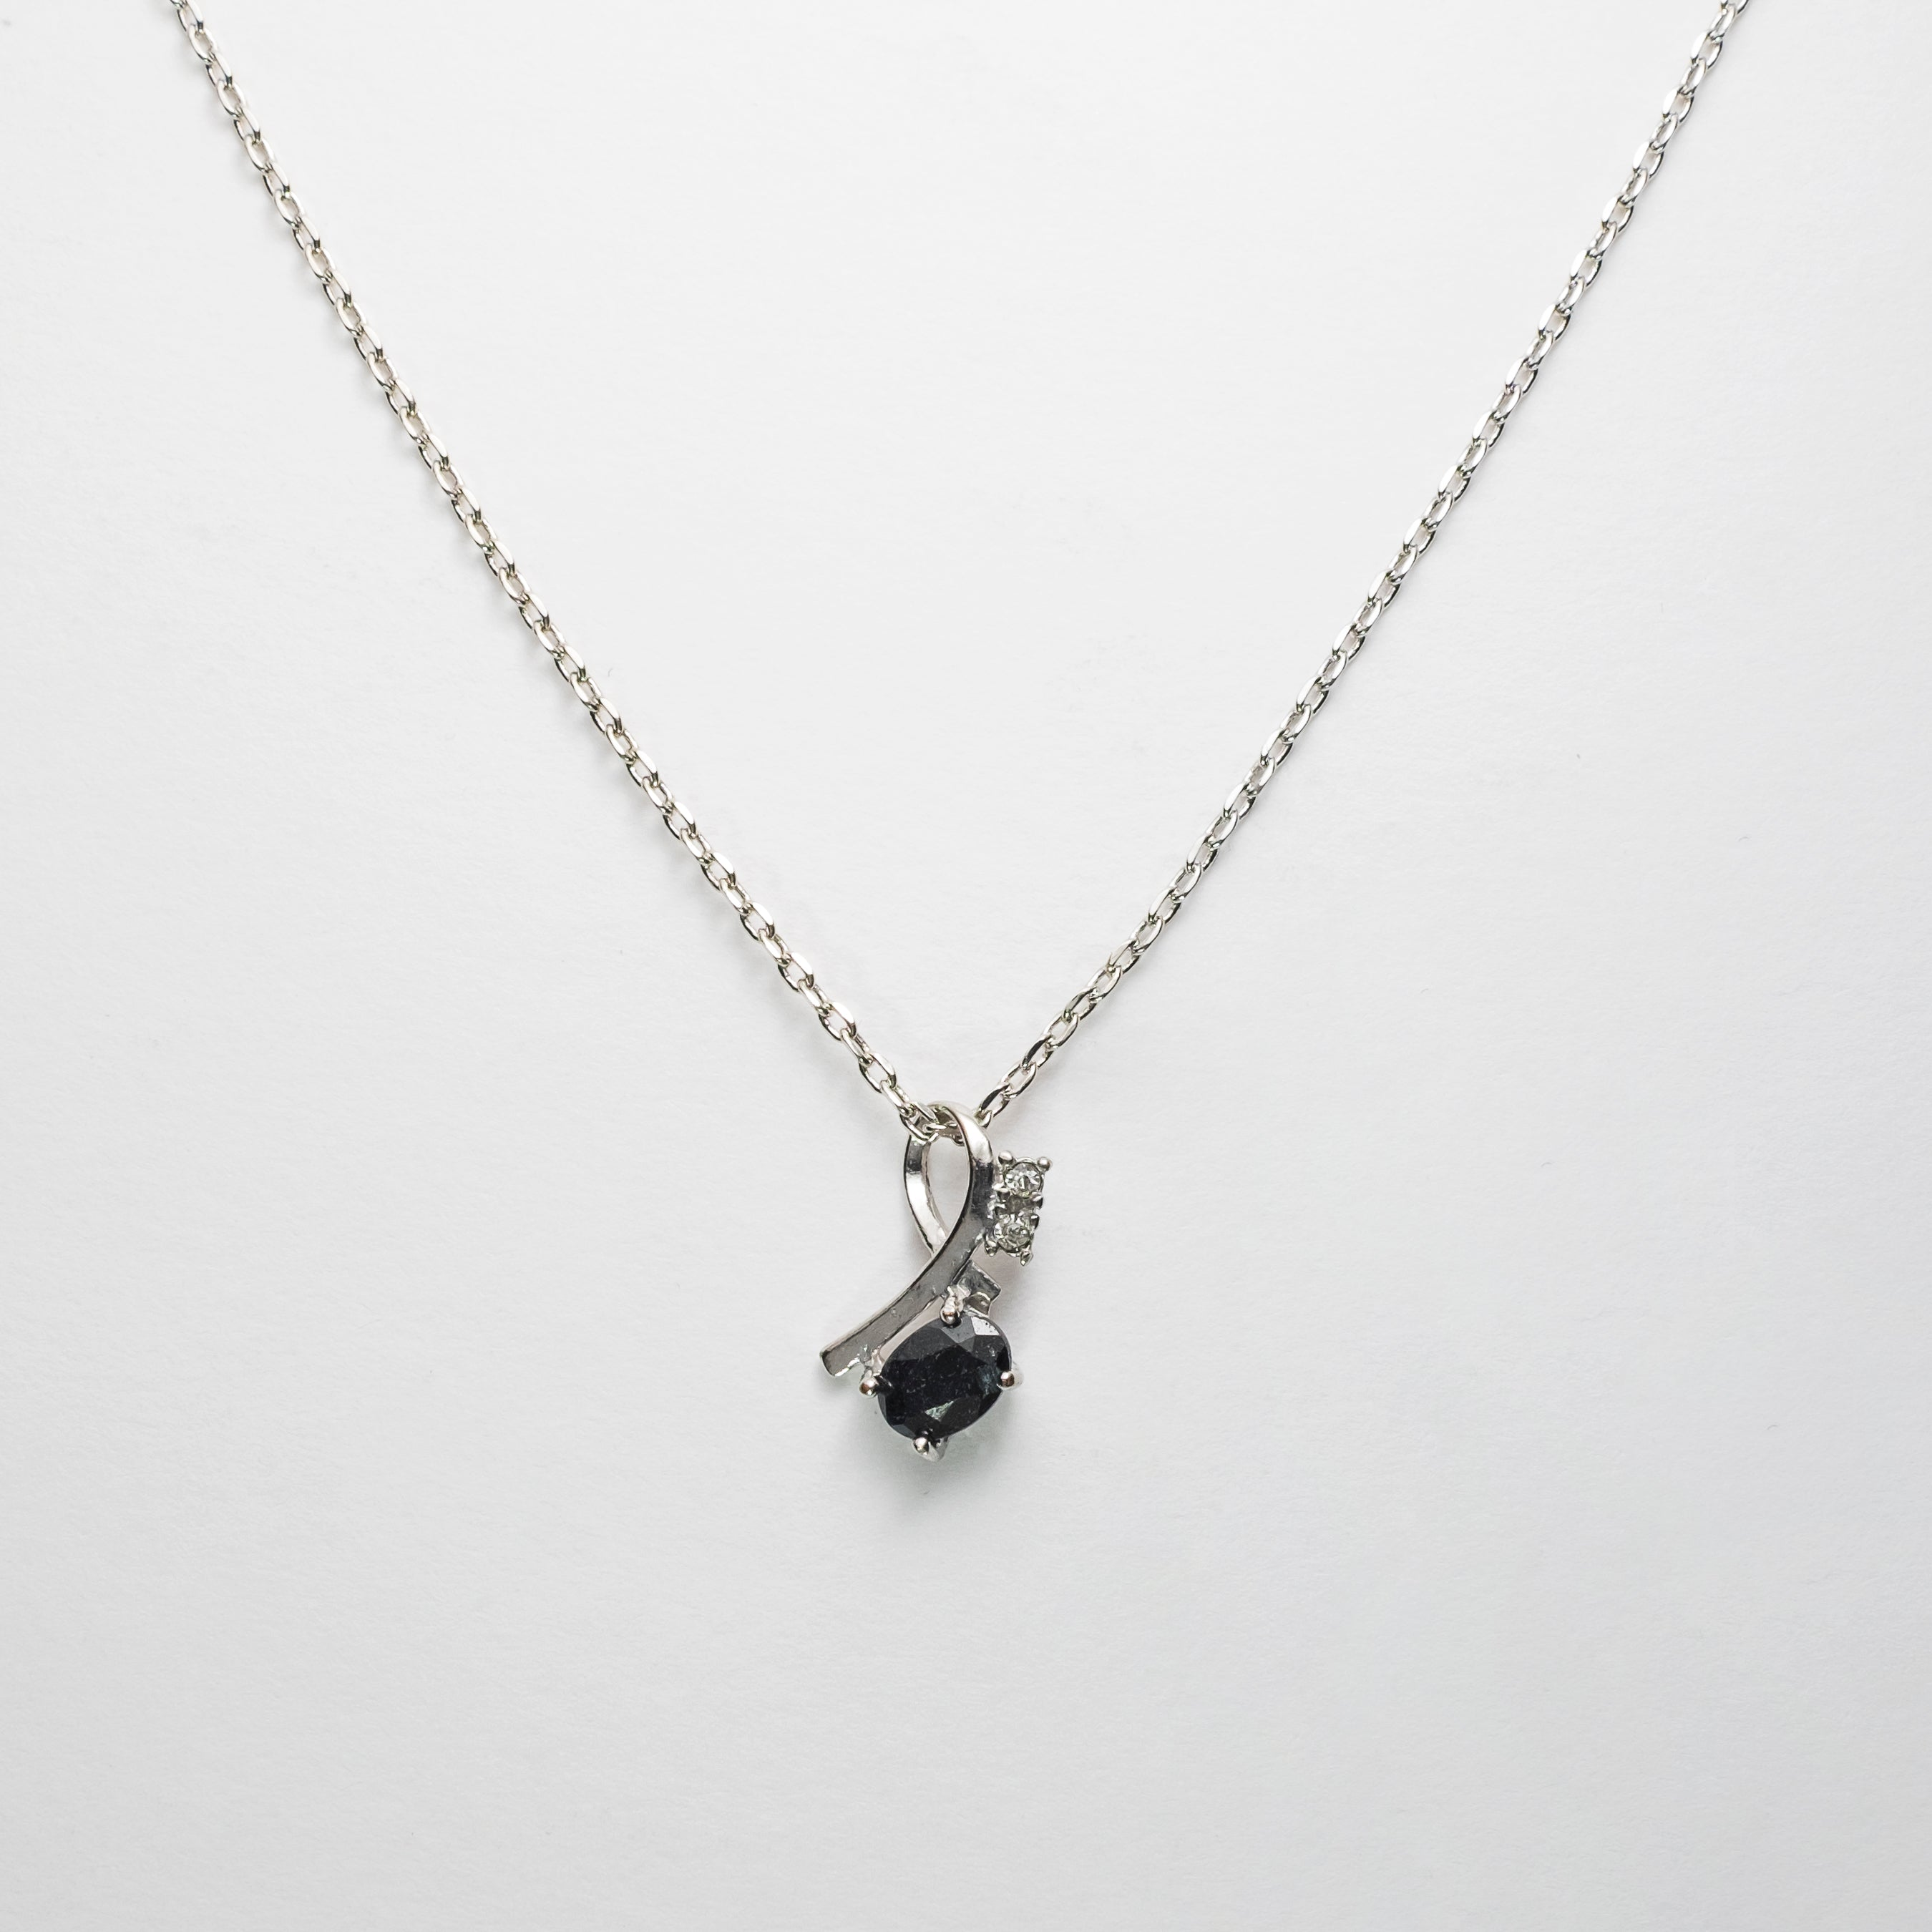 The Saphire Stone Statement Pendant